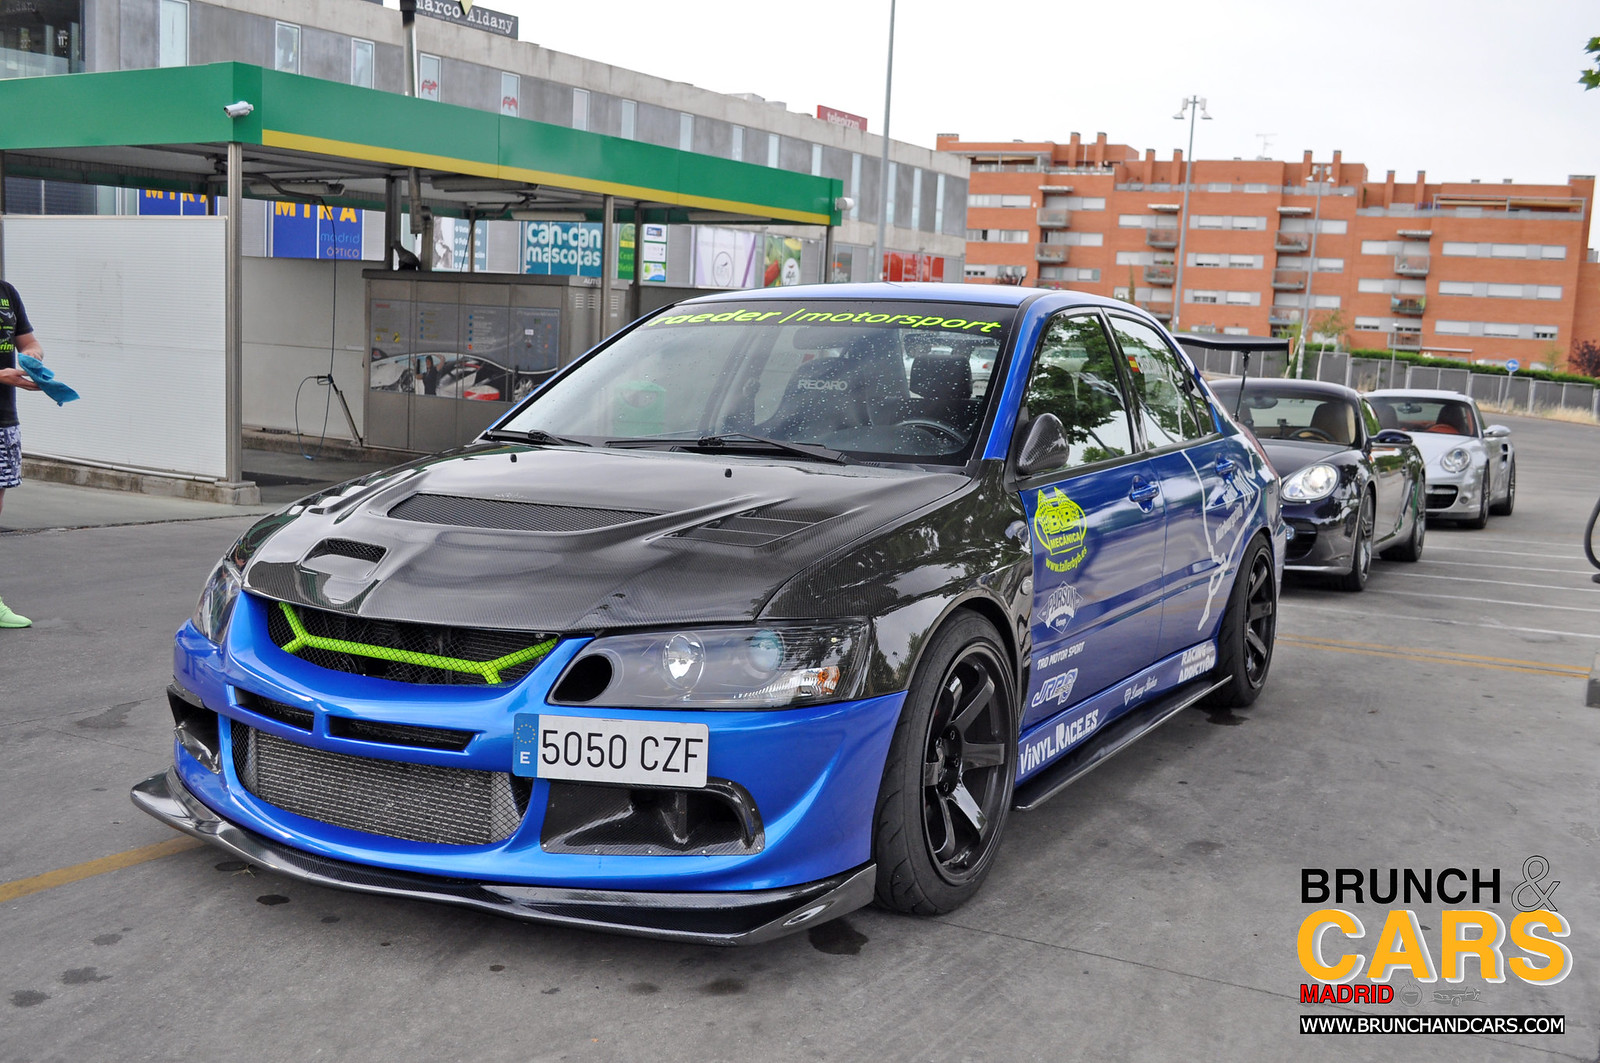 Brunch and Cars Madrid - Round 16